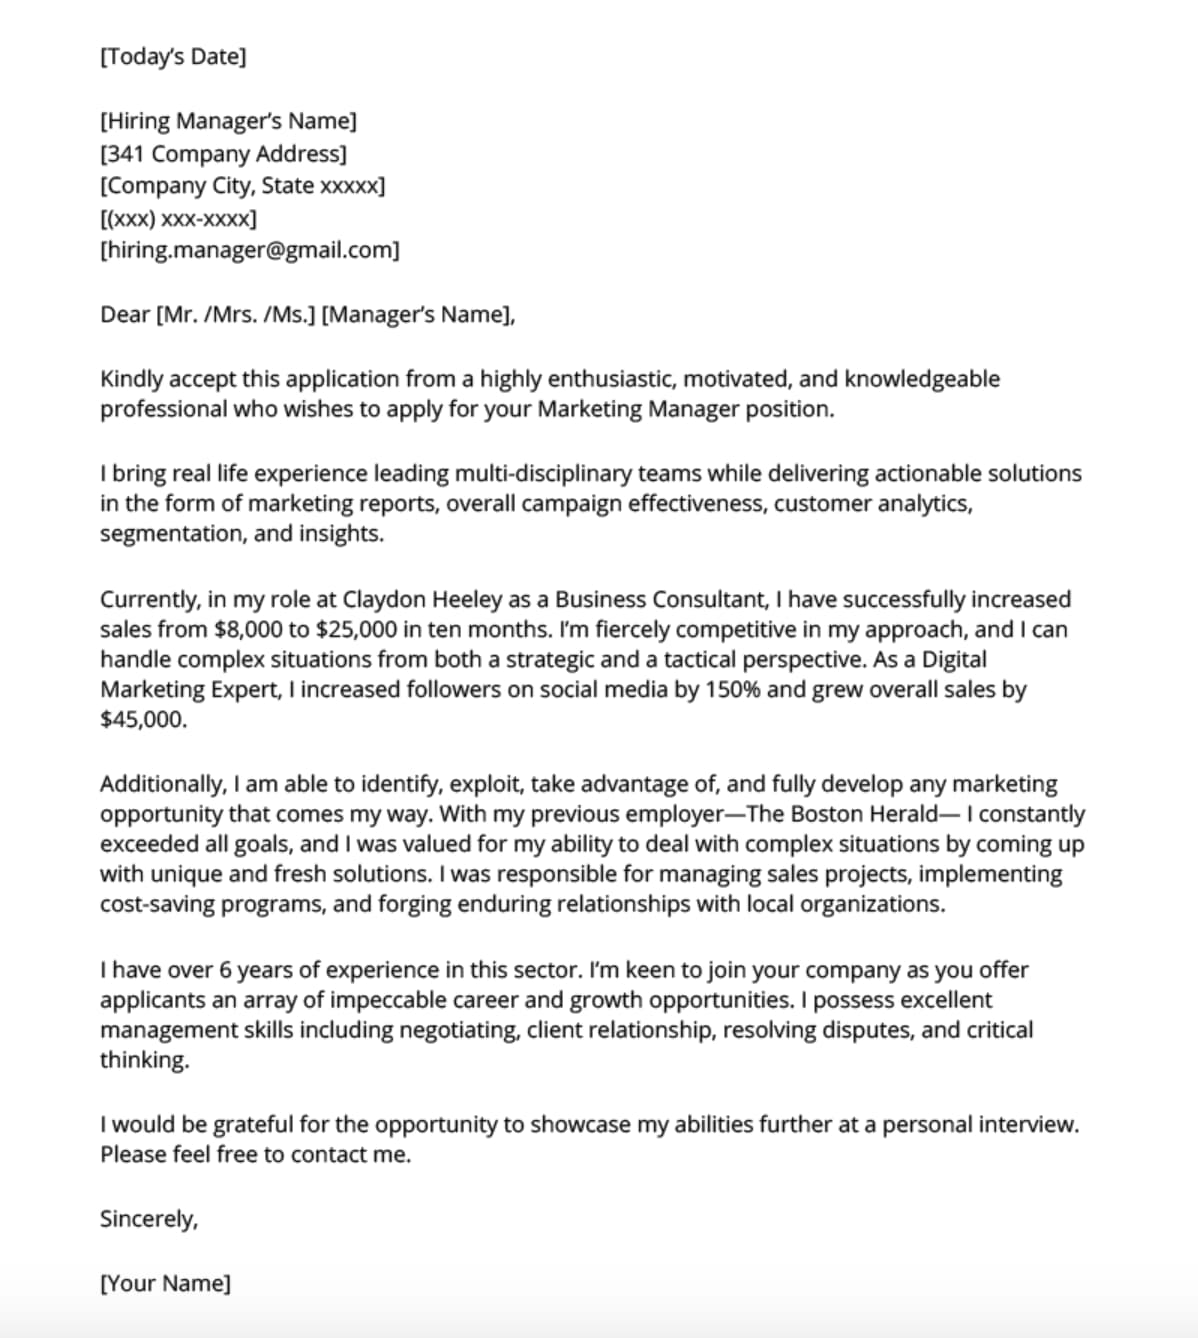 cover letter templates to perfect your next job application resume generic example devry Resume Resume Cover Letter Generic